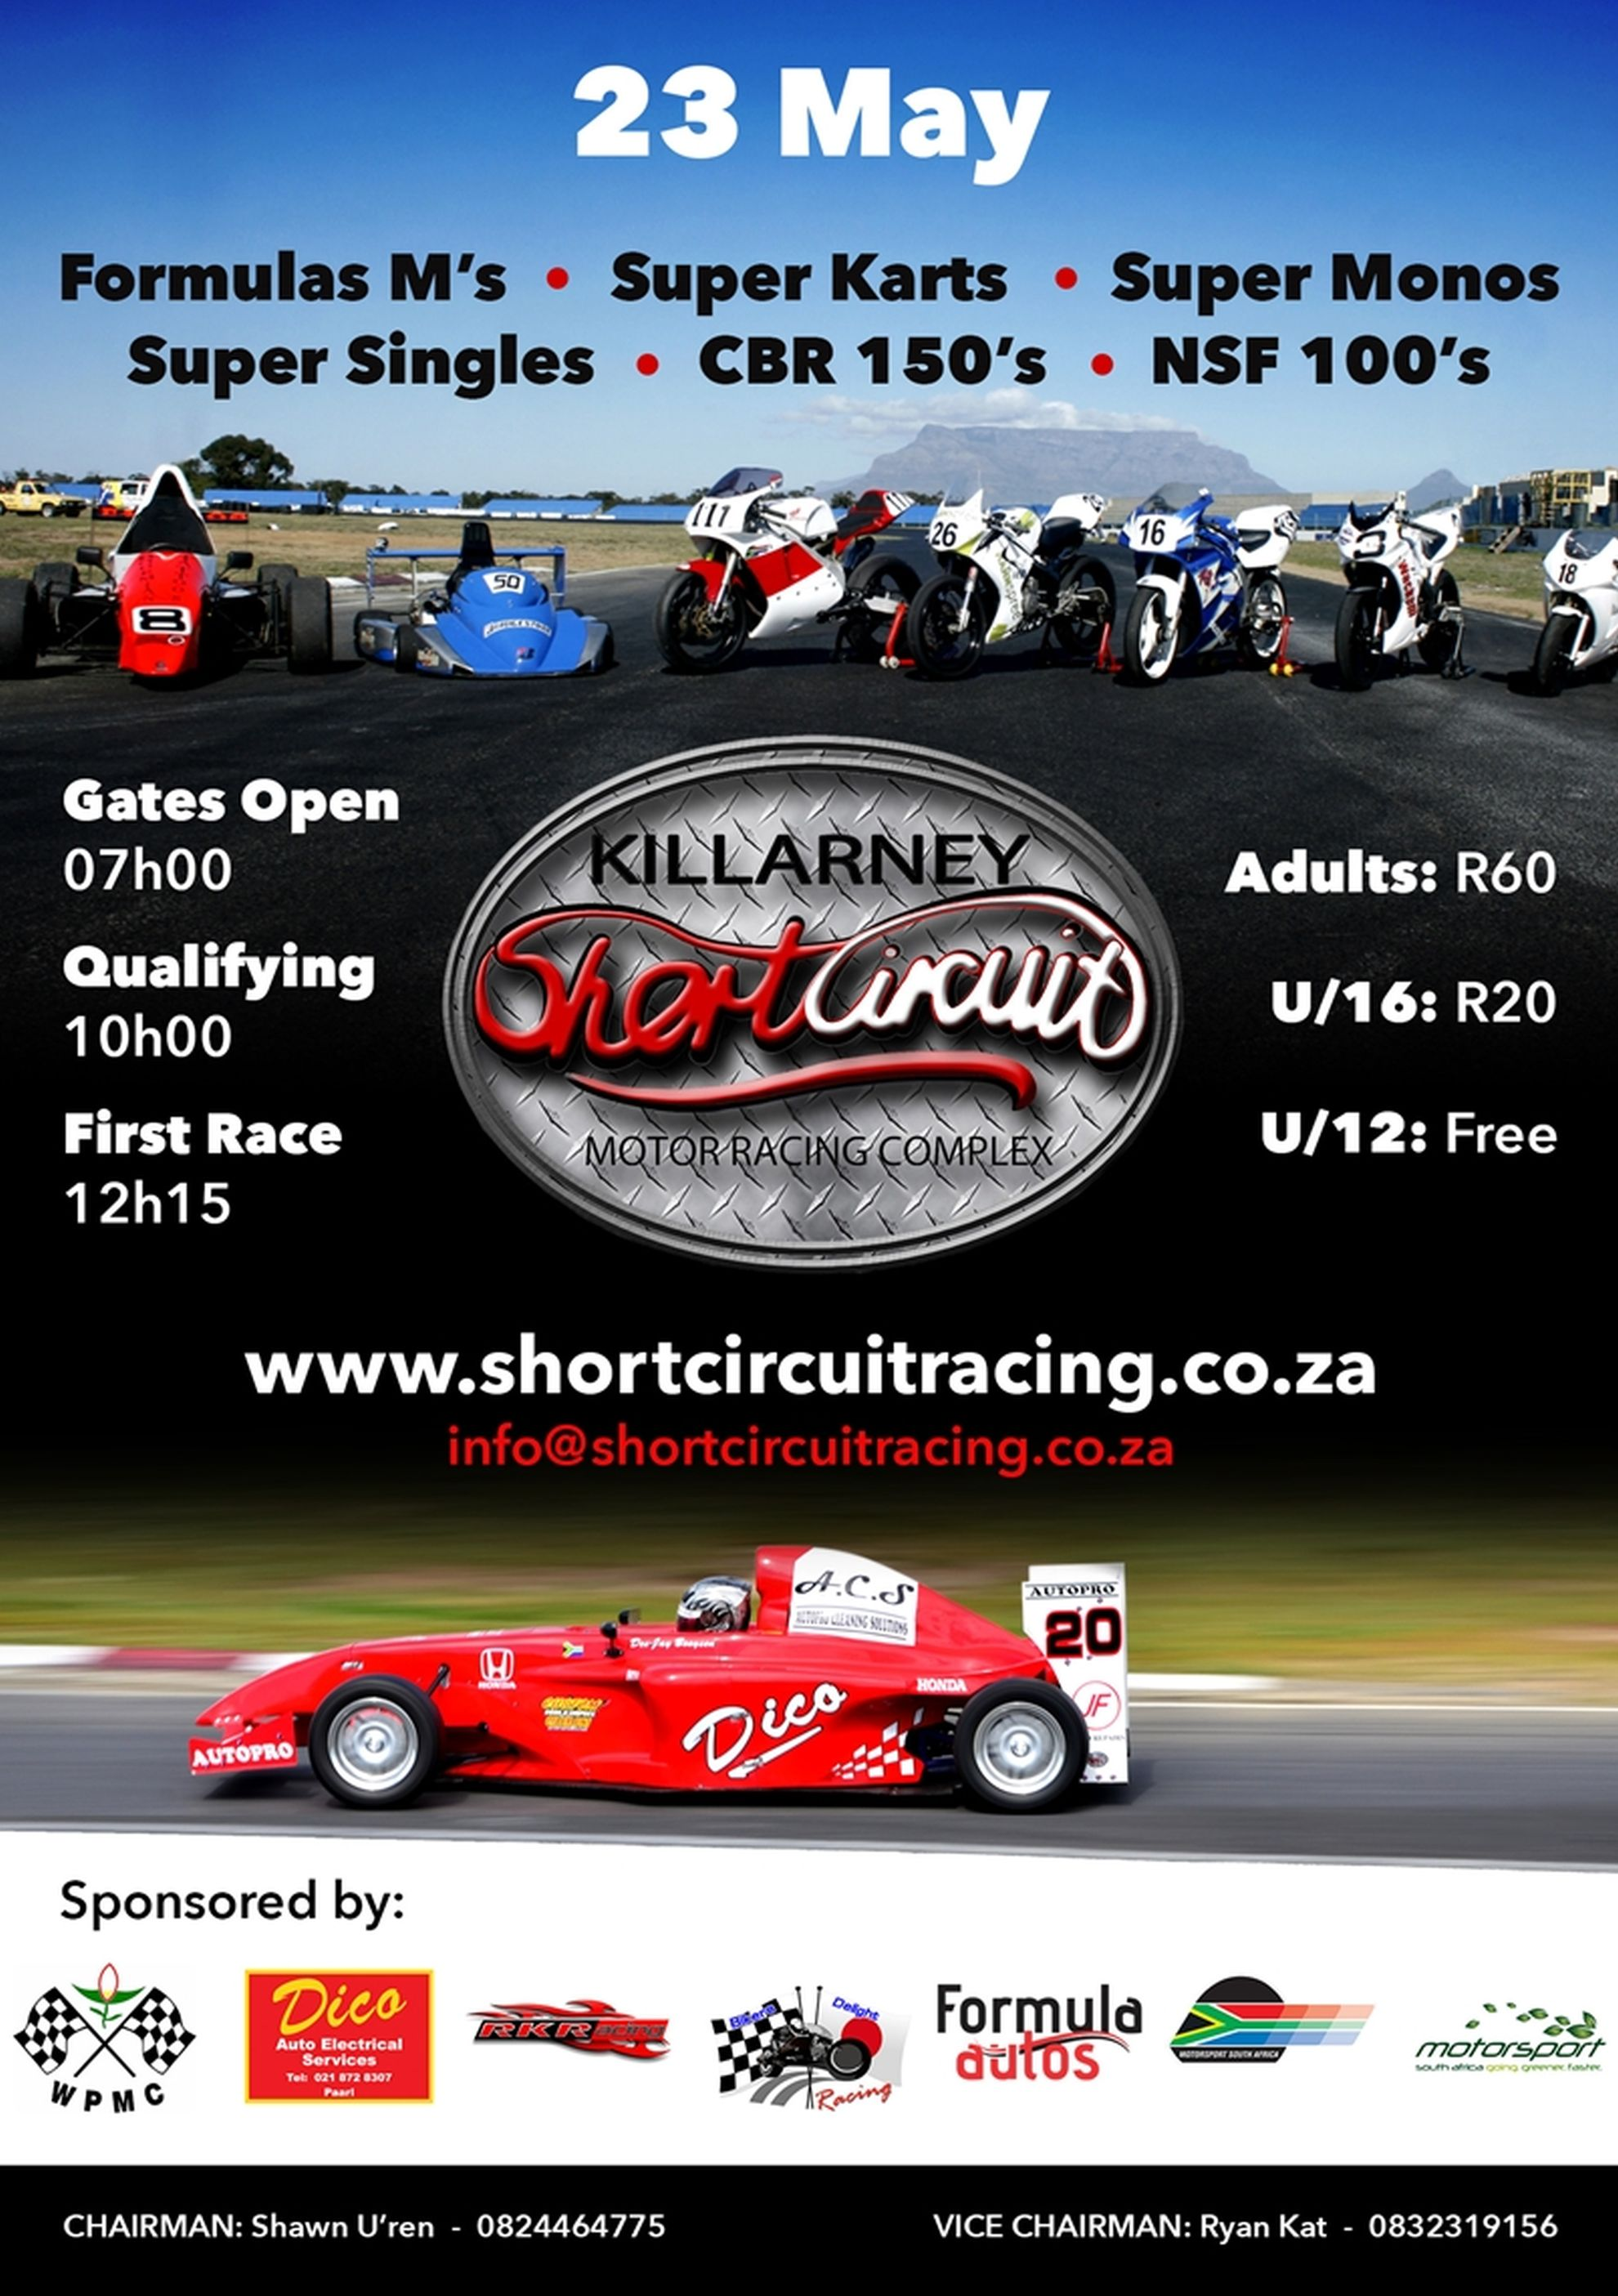 Killarney-short-circuit-racing-23-May-2015